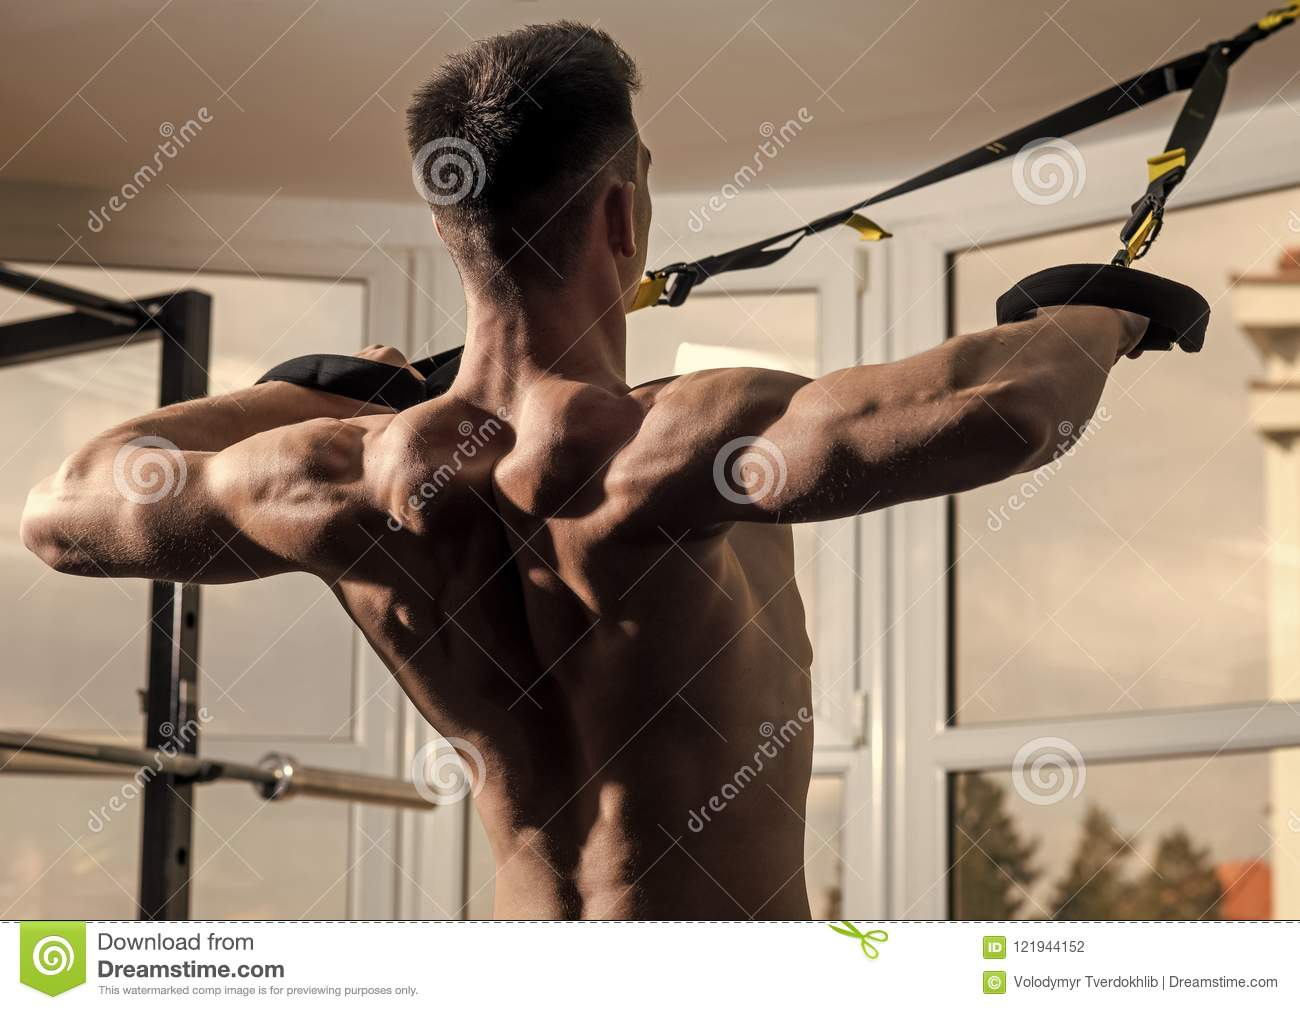 ... athlete, muscular macho does exercise with trx loops, window on  background, close up. Man with nude torso, and muscular back in gym enjoy  training, trx.